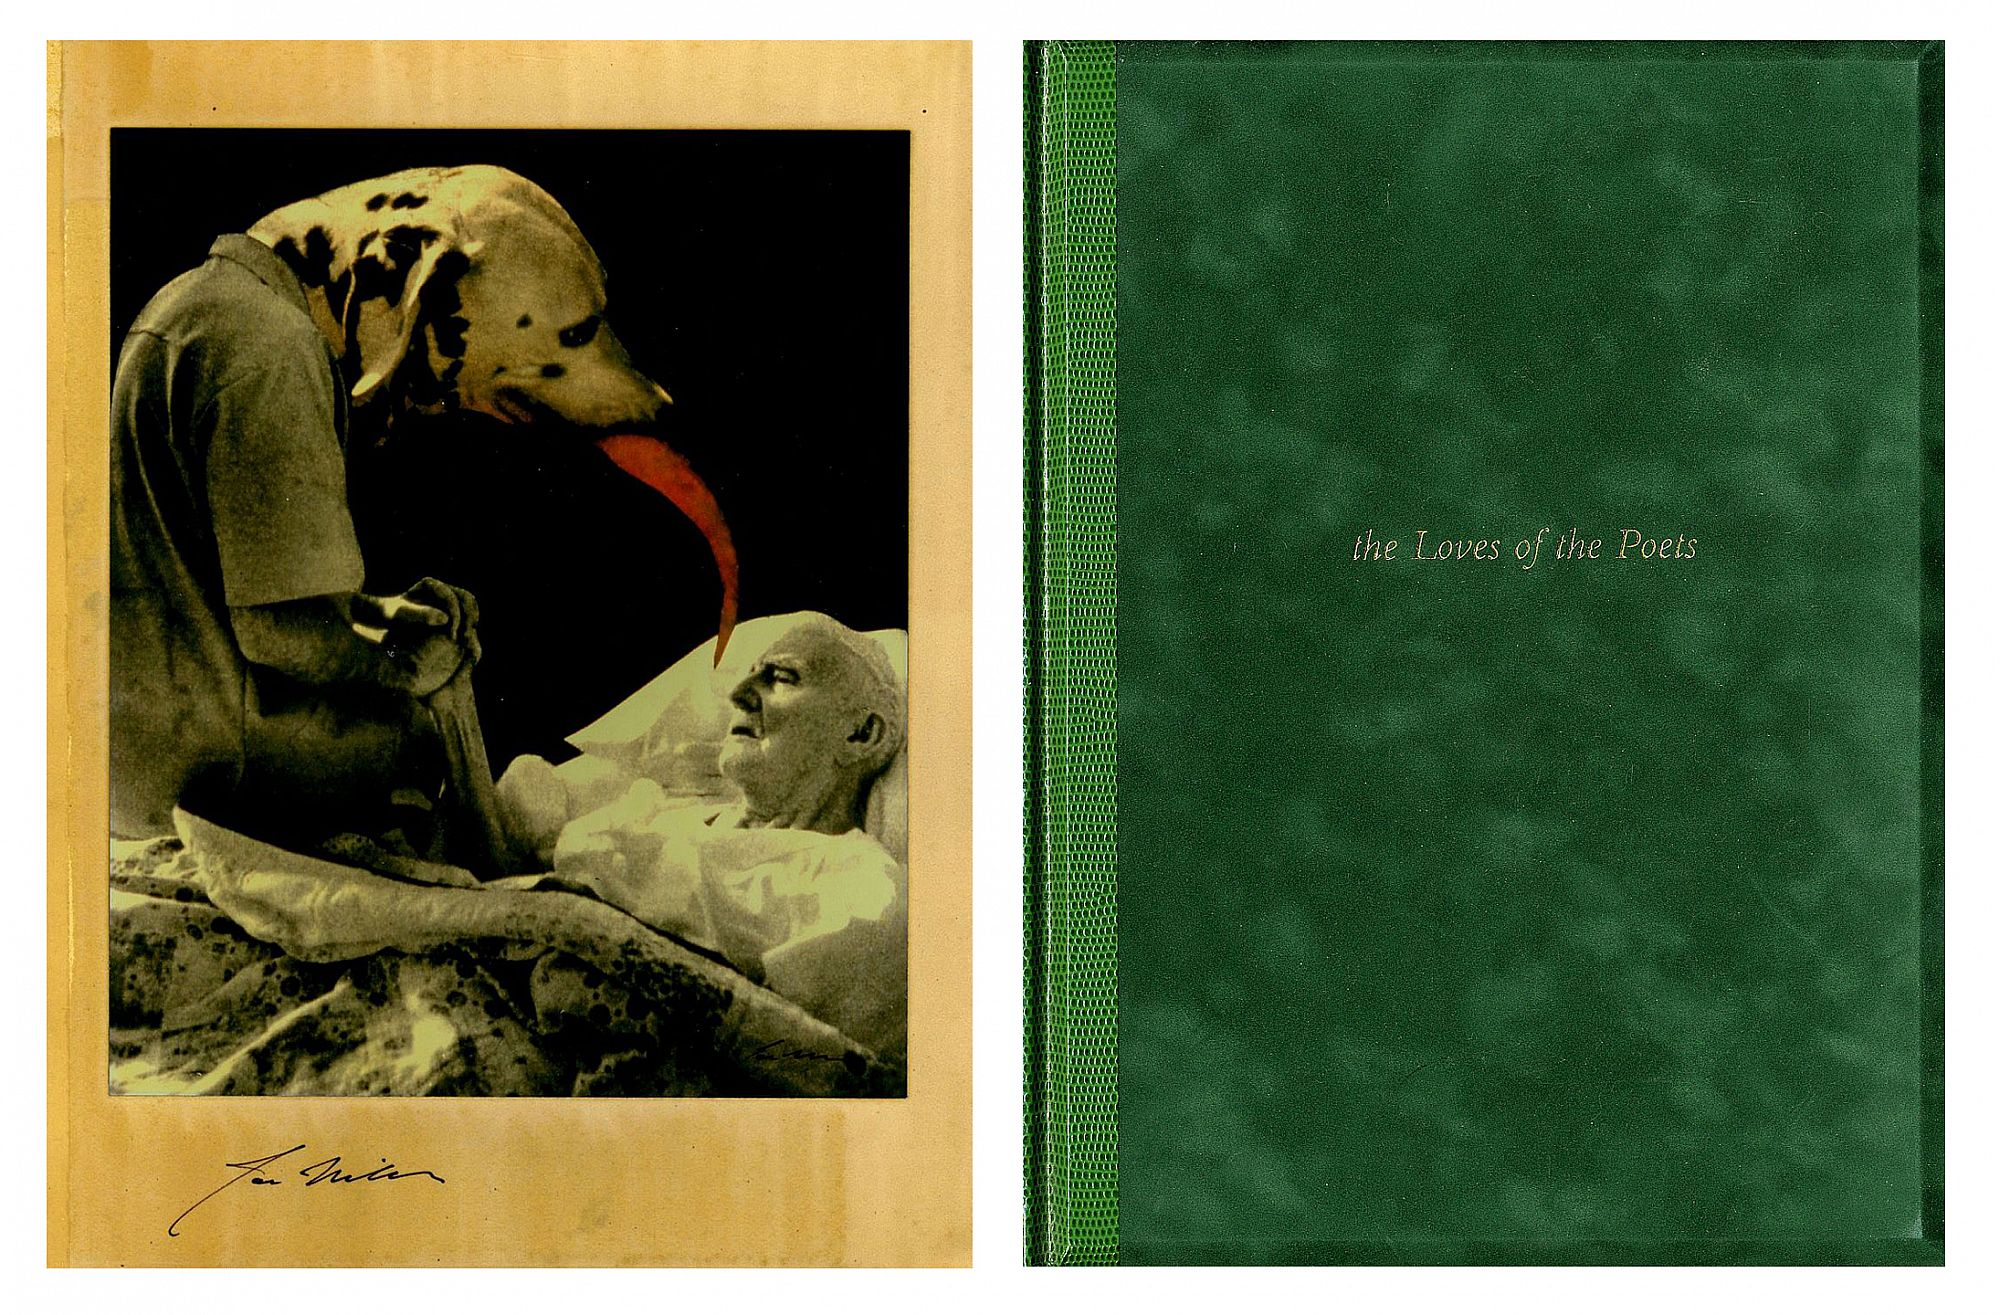 Joseph Mills: The Loves of the Poets, Limited Edition (with Print)